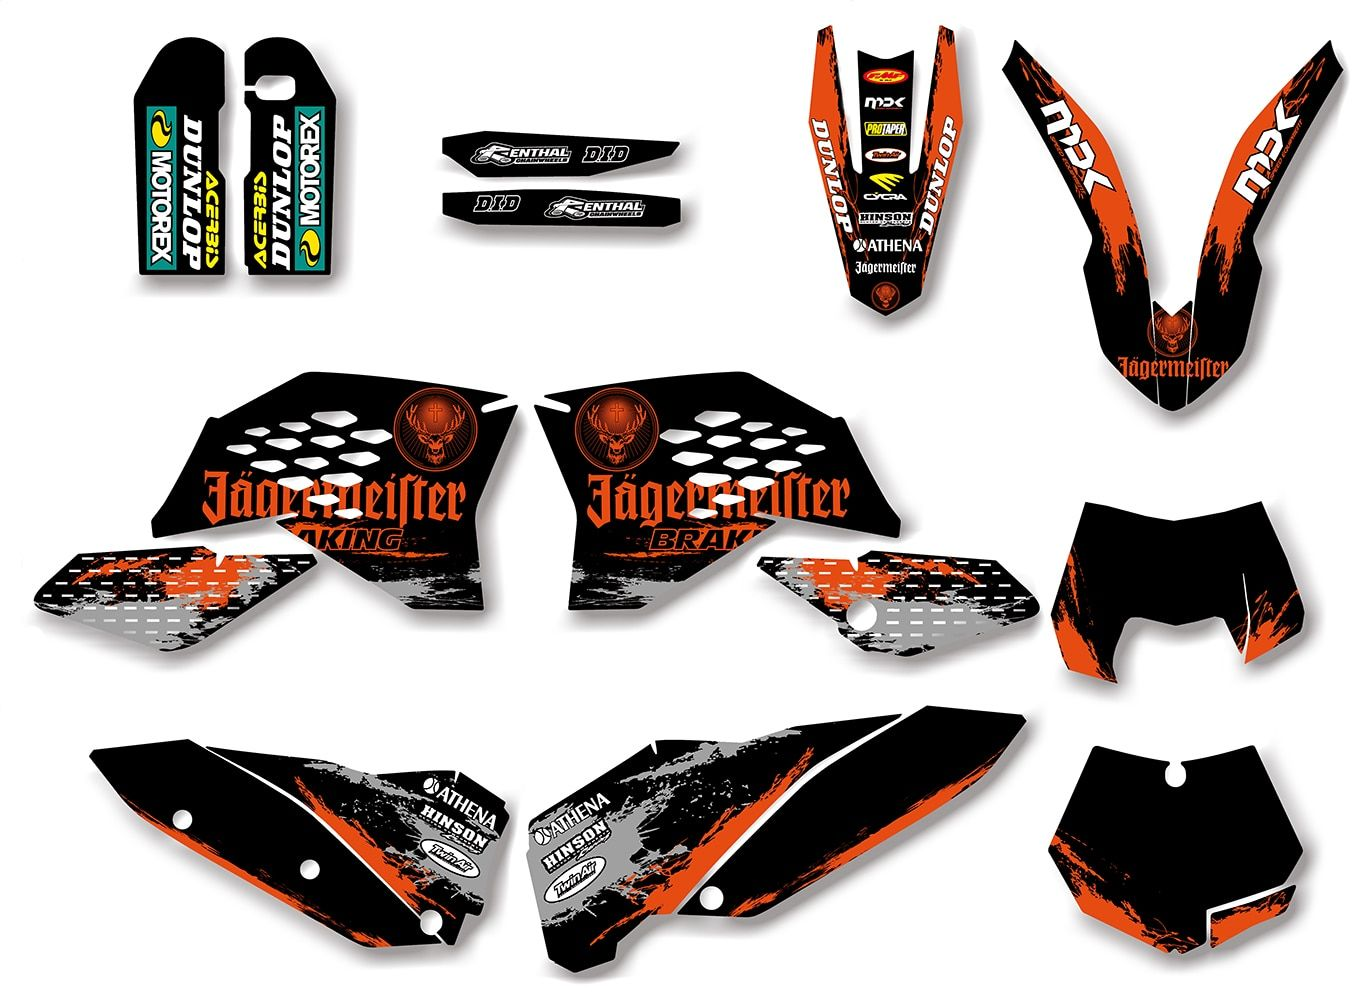 Motorctcle Graphic Decal Sticker For KTM 125 200 250 300 350 450 525 SX SXF 2007-2011 EXC XCF XC-F 2008 2009 2010 2011